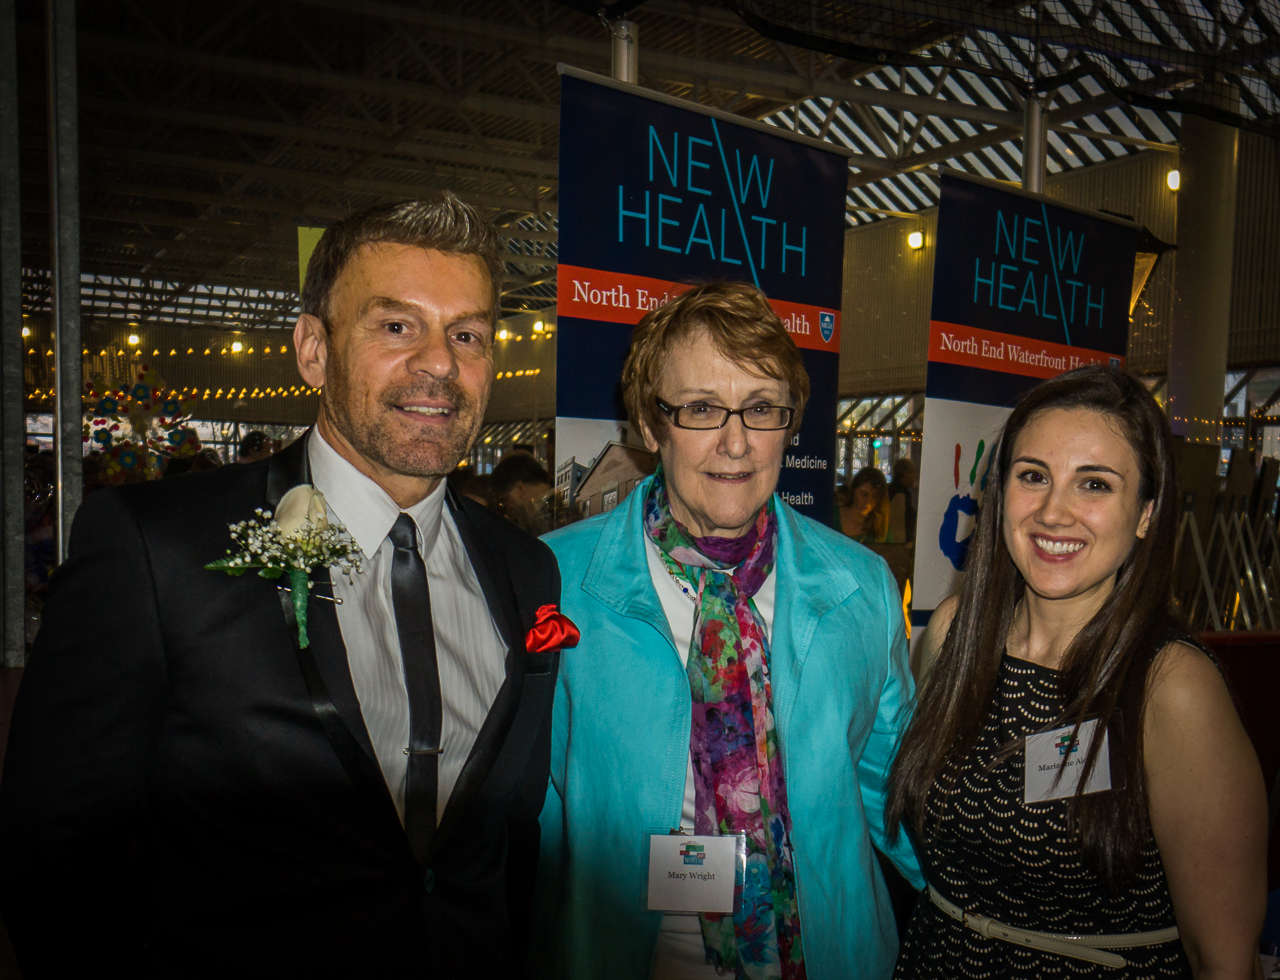 (L-R) NEW Health CEO Jim Luisi, Health Educator Mary Wright and TONE Coordinator Marianne Aiello